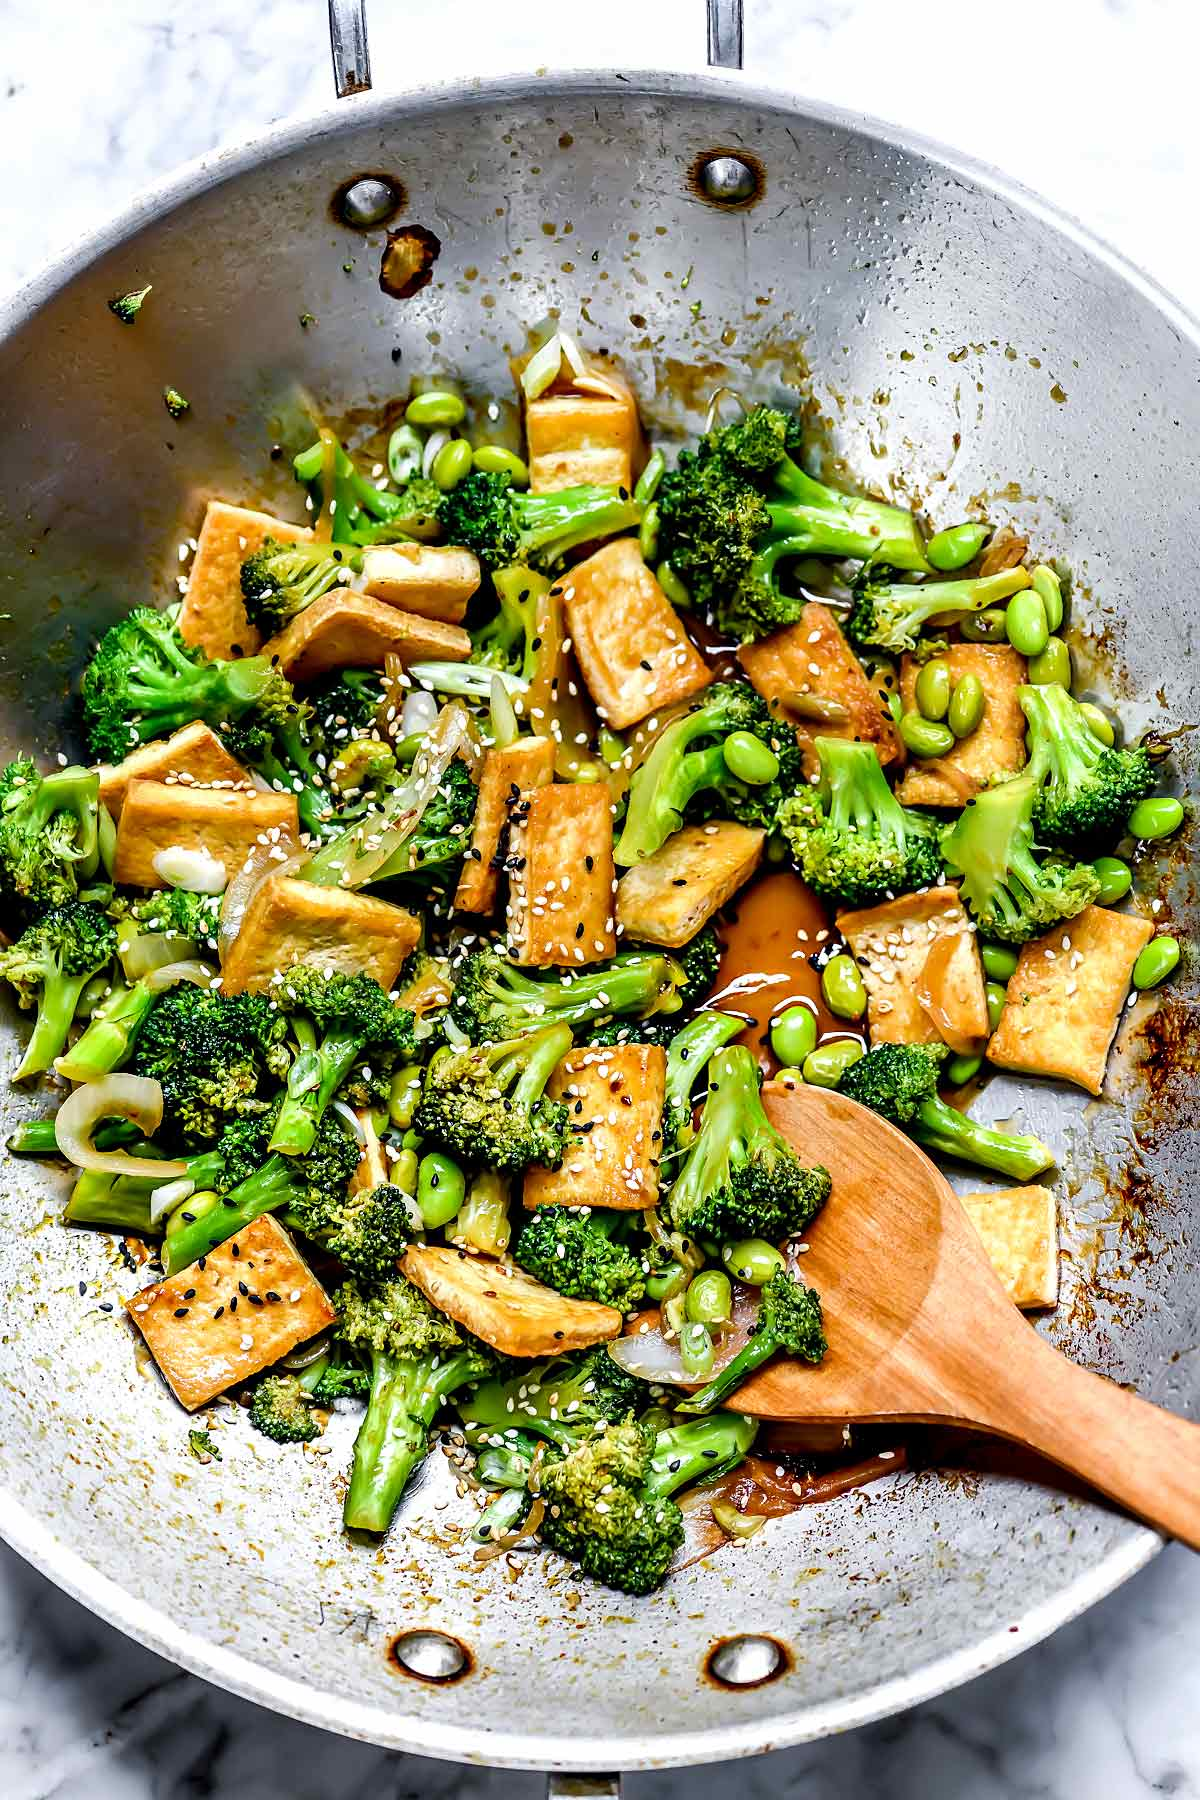 Teriyaki Tofu And Broccoli Stir Fry Foodiecrush Com